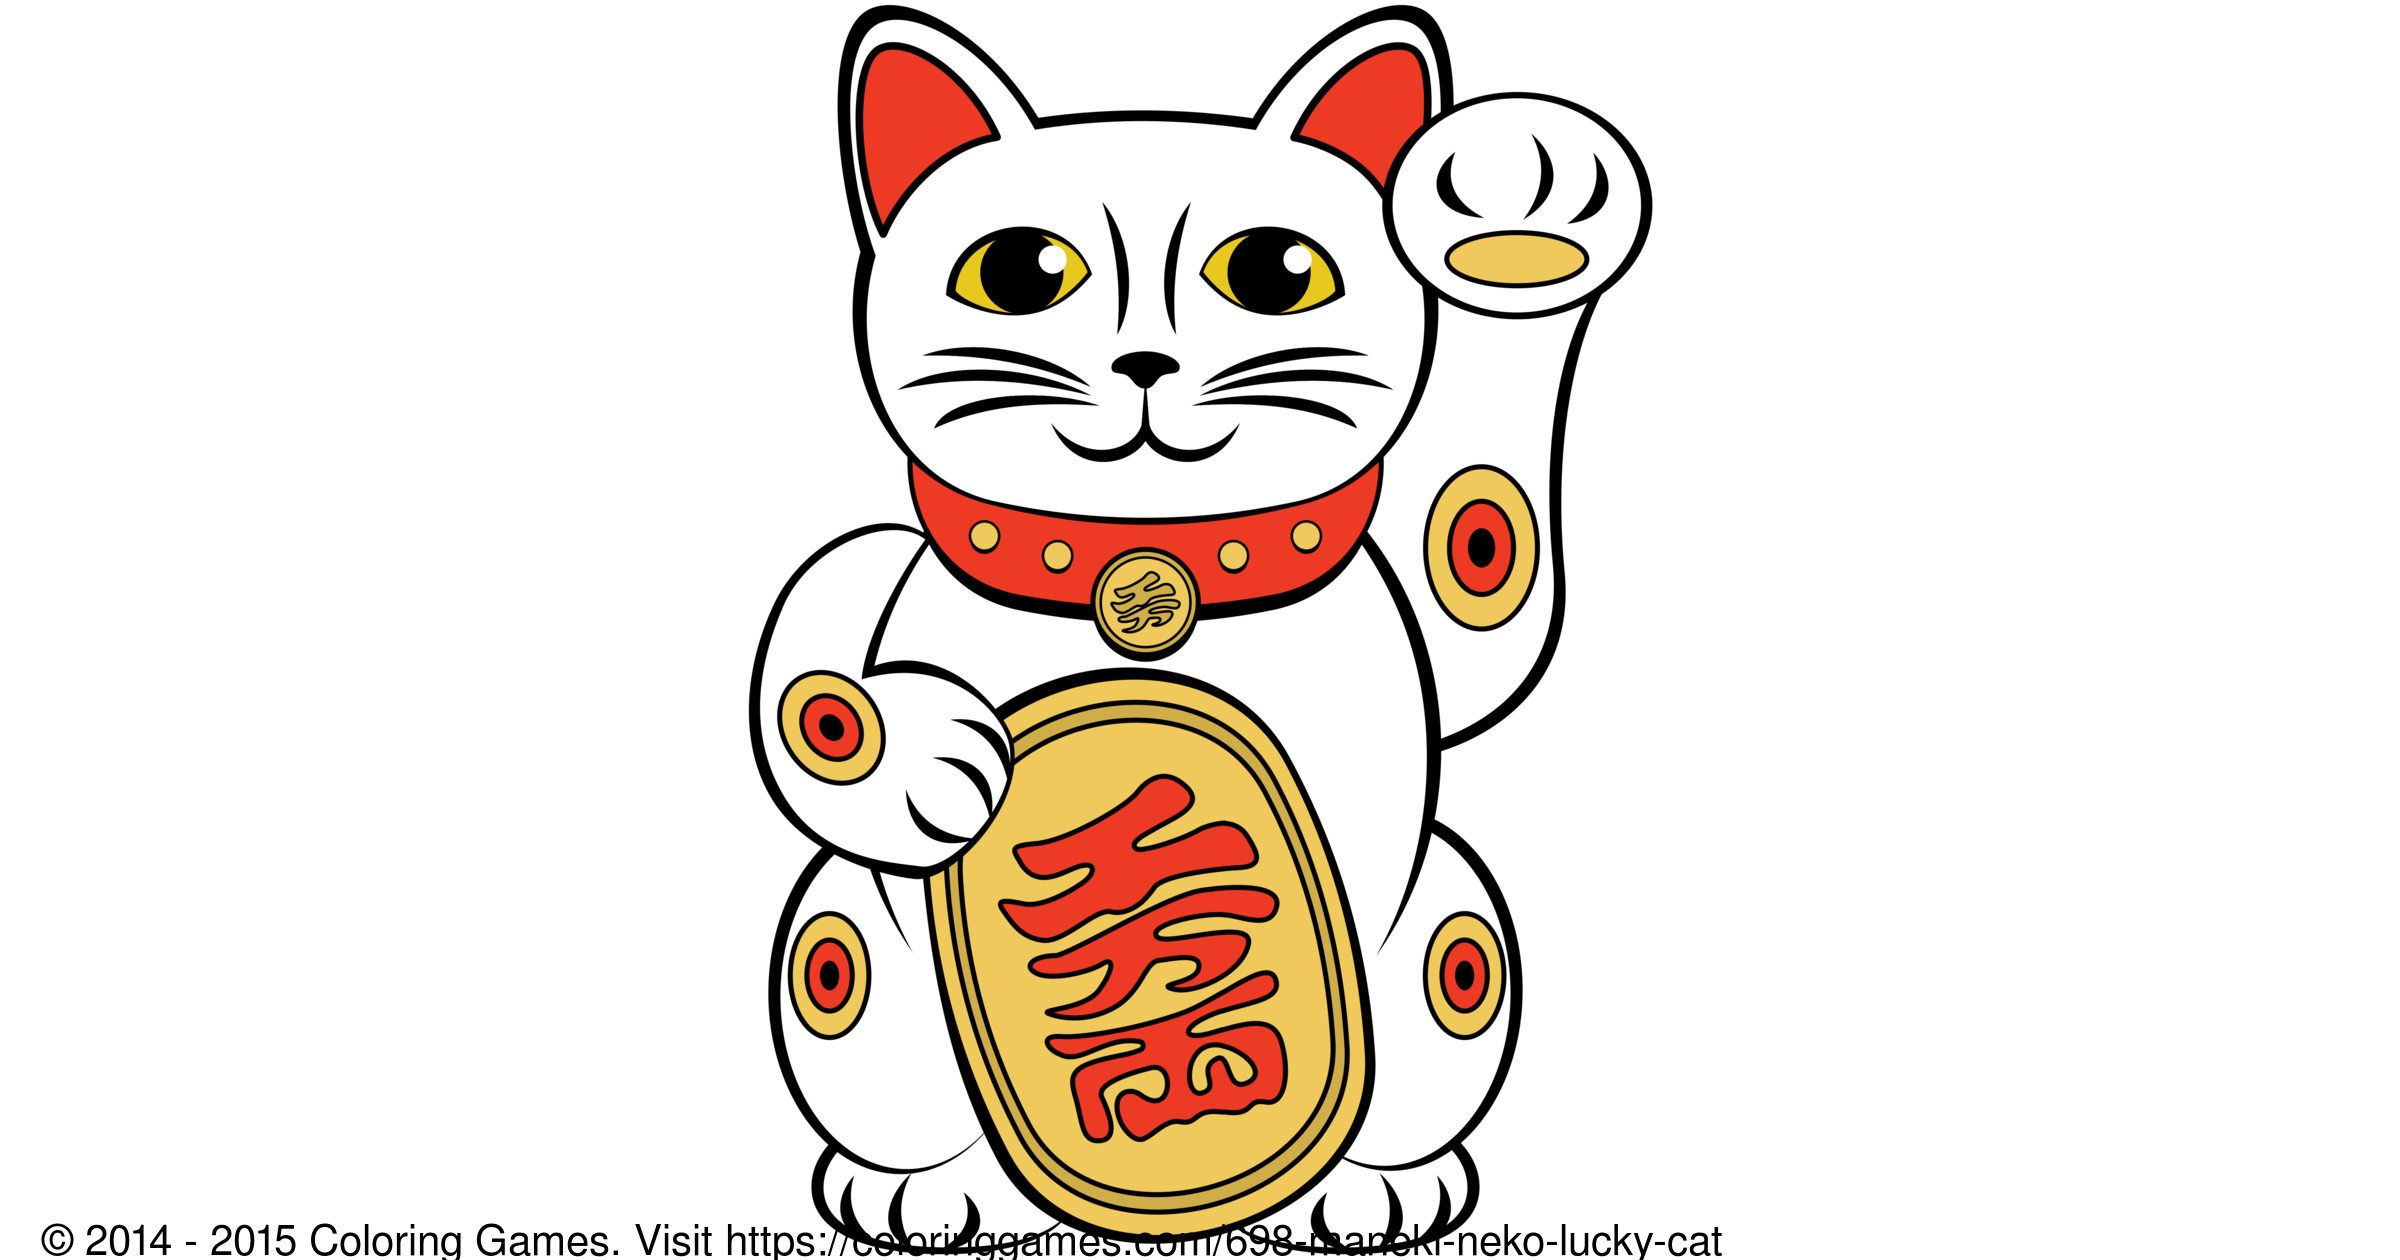 Maneki Neko Lucky Cat - Coloring Games and Coloring Pages